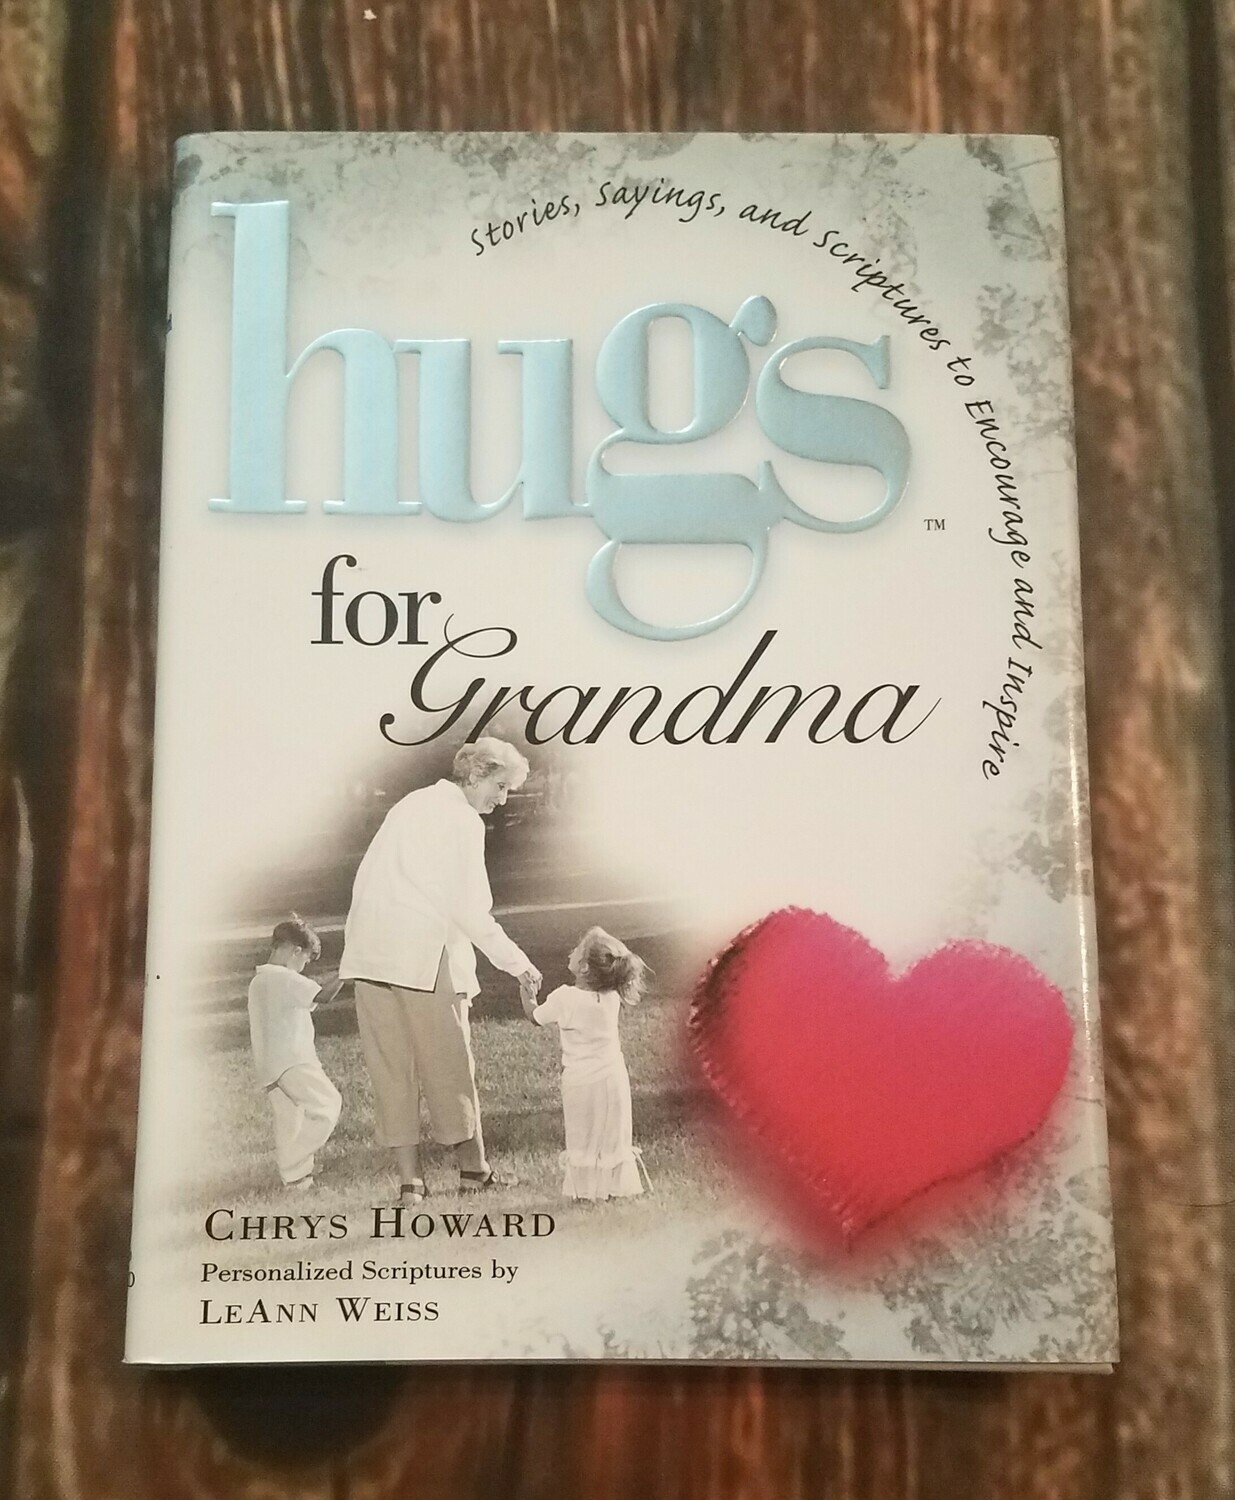 Hugs for Grandma by Chrys Howard and LeAnn Weiss